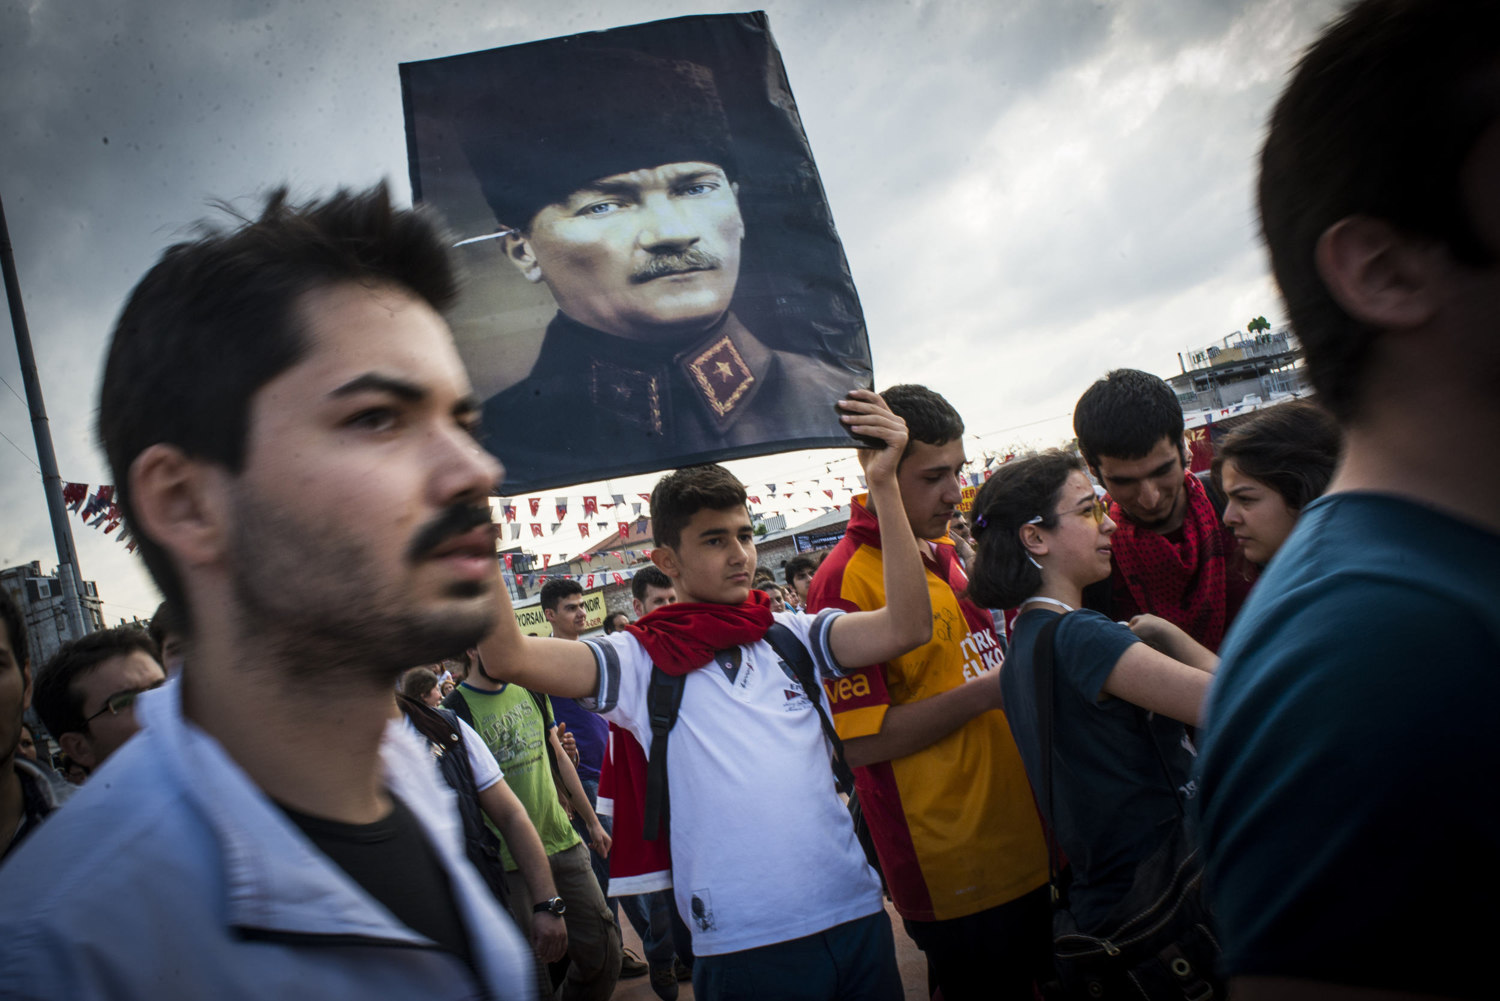 A boy holds up a portrait of former leader Mustafa Kemal Ataturk in Taksim Square,  where yesterdays clashes occurred, June 2, 2013.